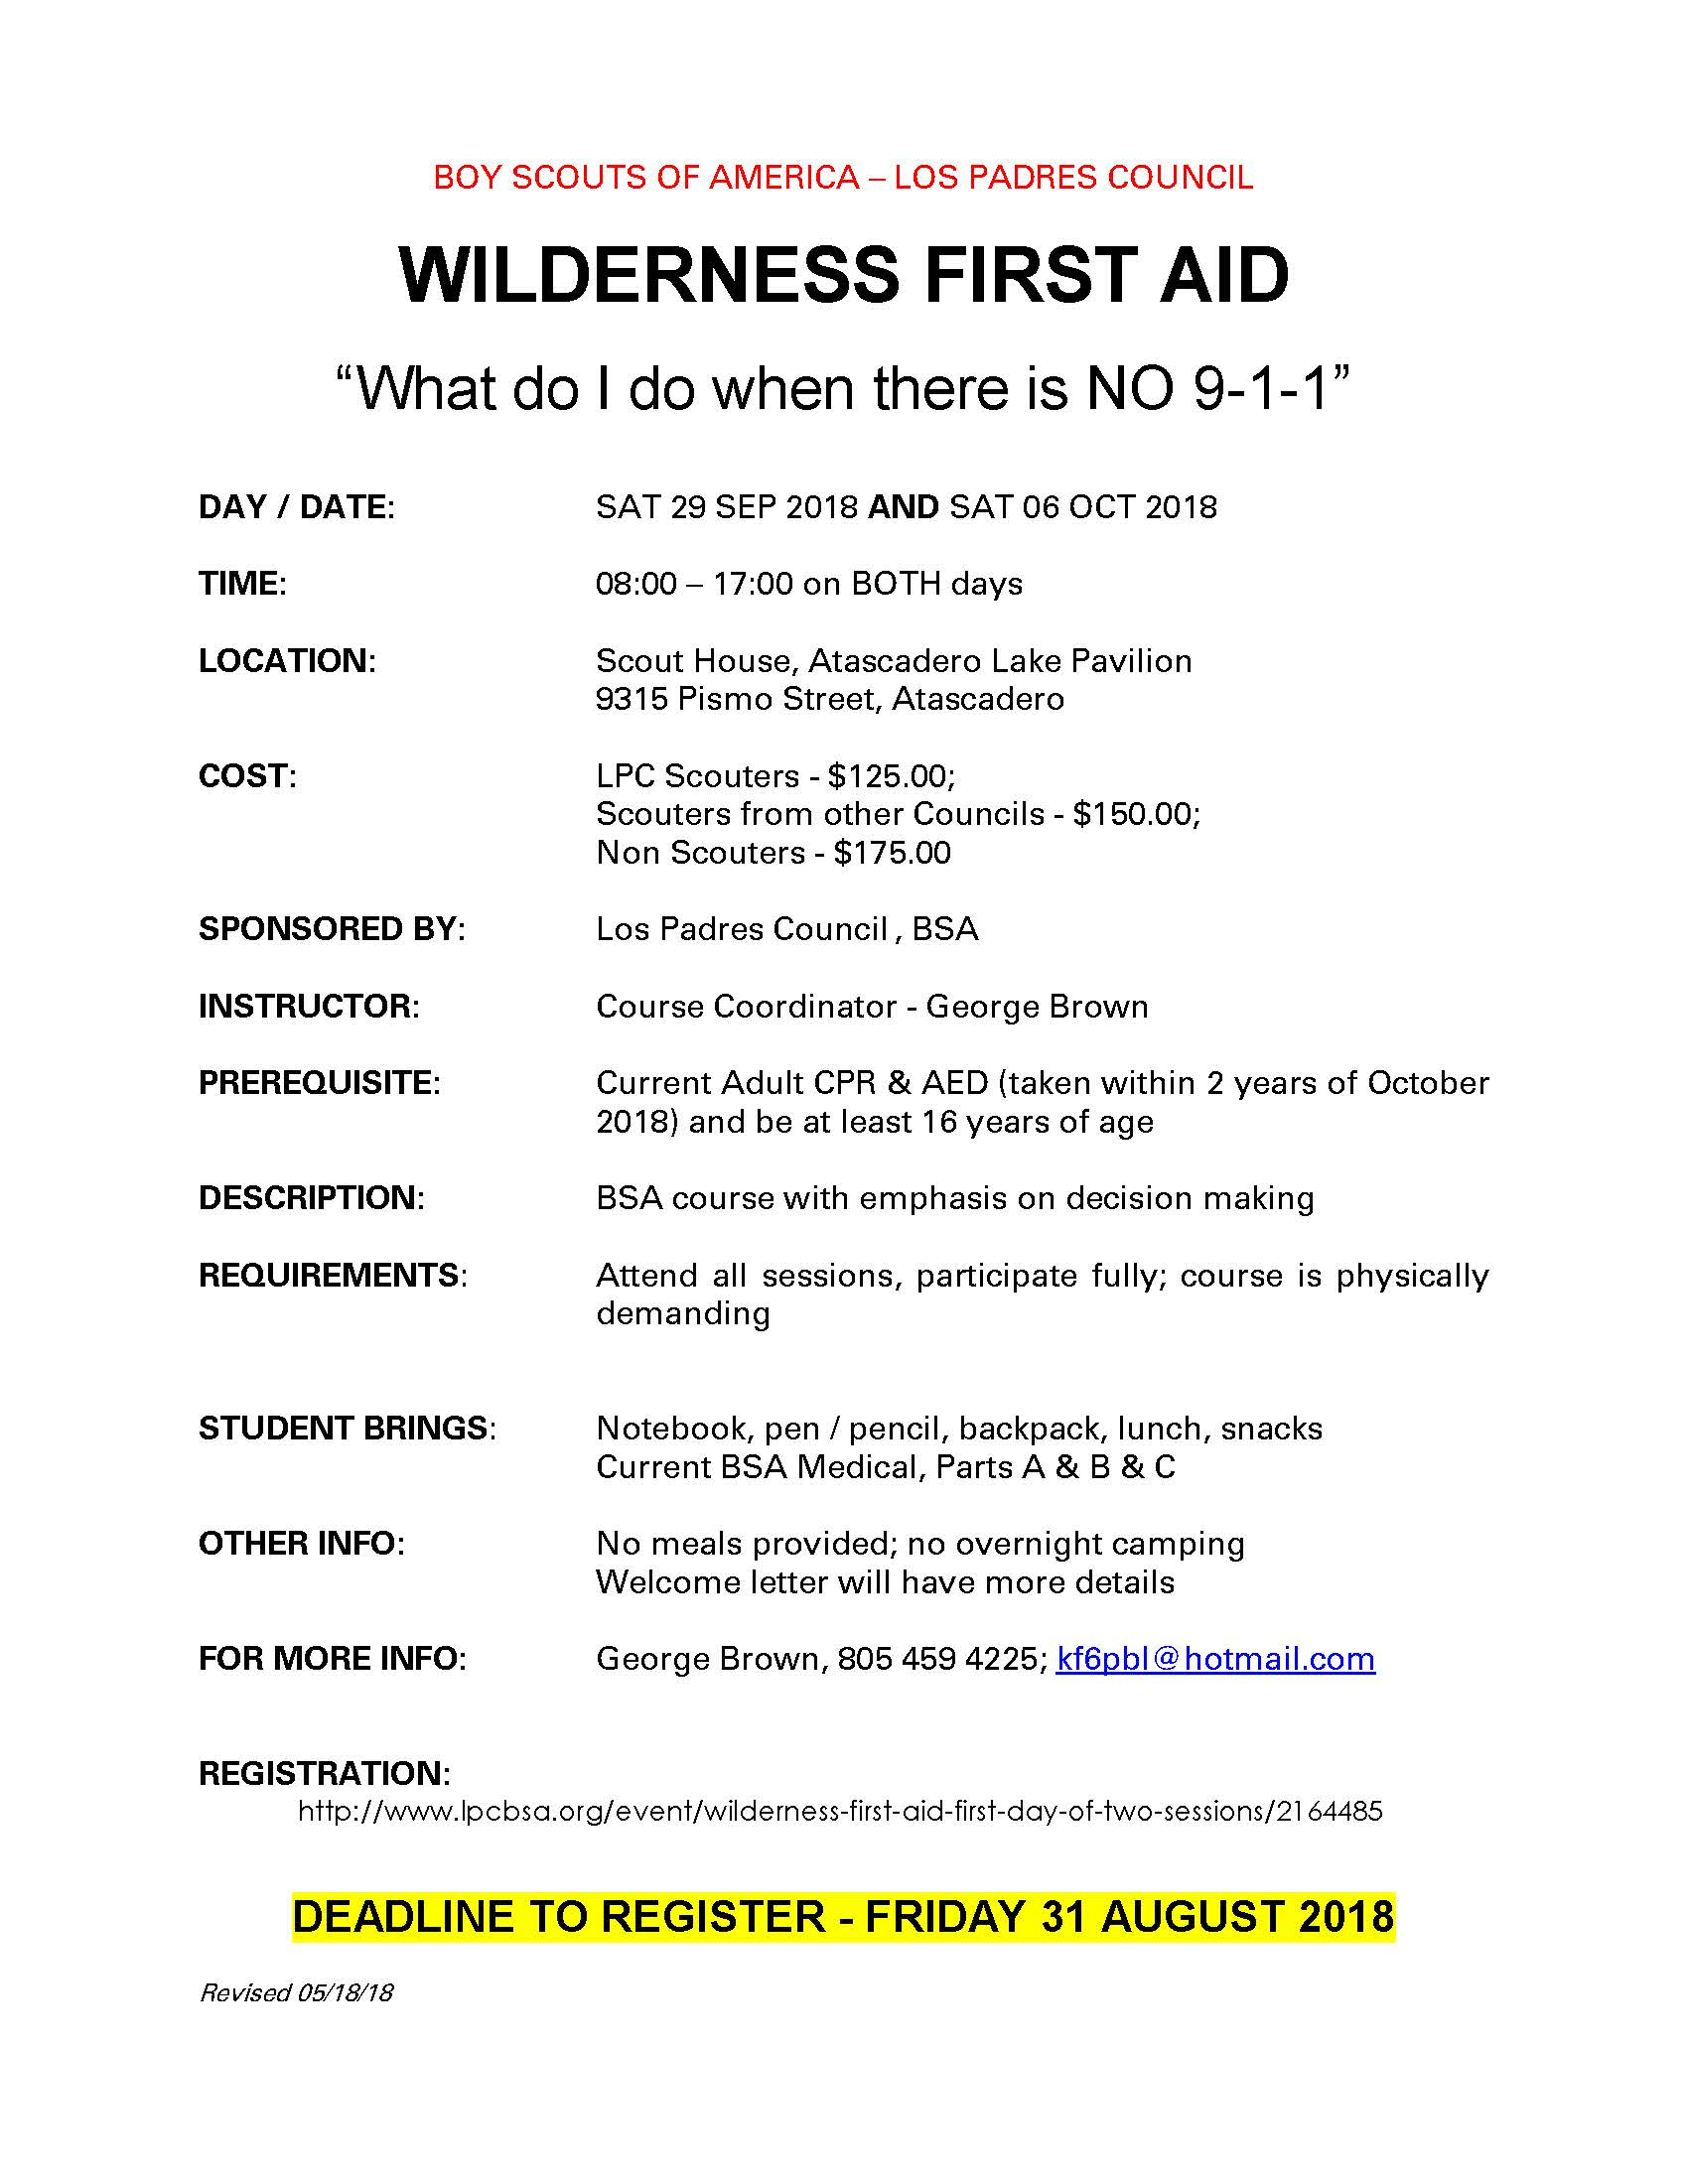 Wilderness First Aid - Fall 2018